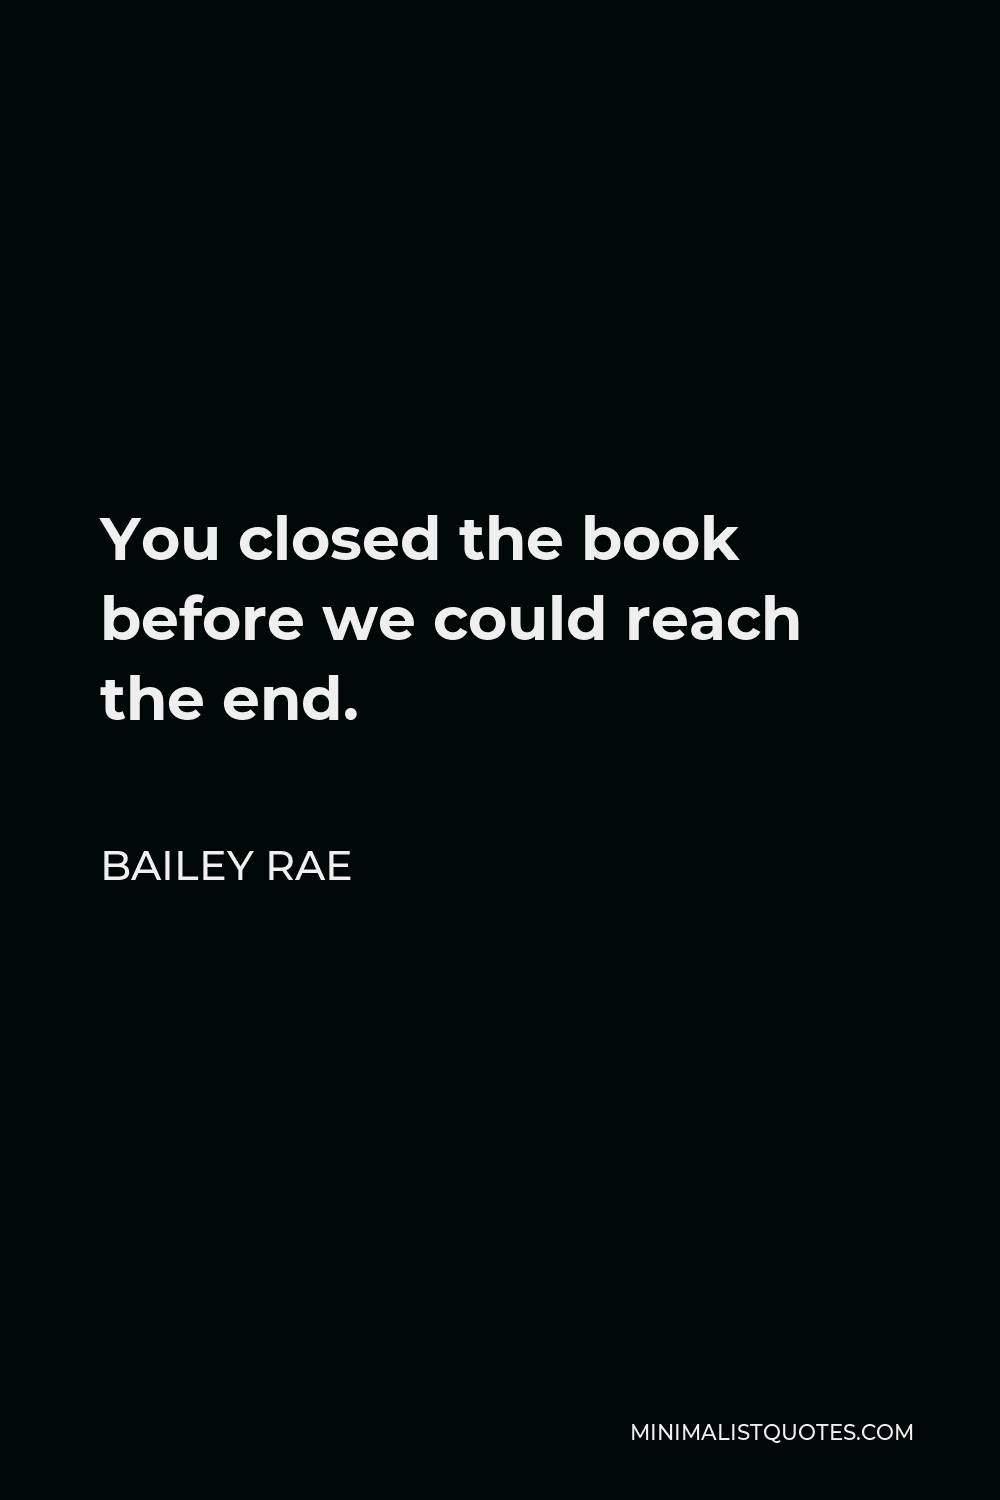 Bailey Rae Quote - You closed the book before we could reach the end.